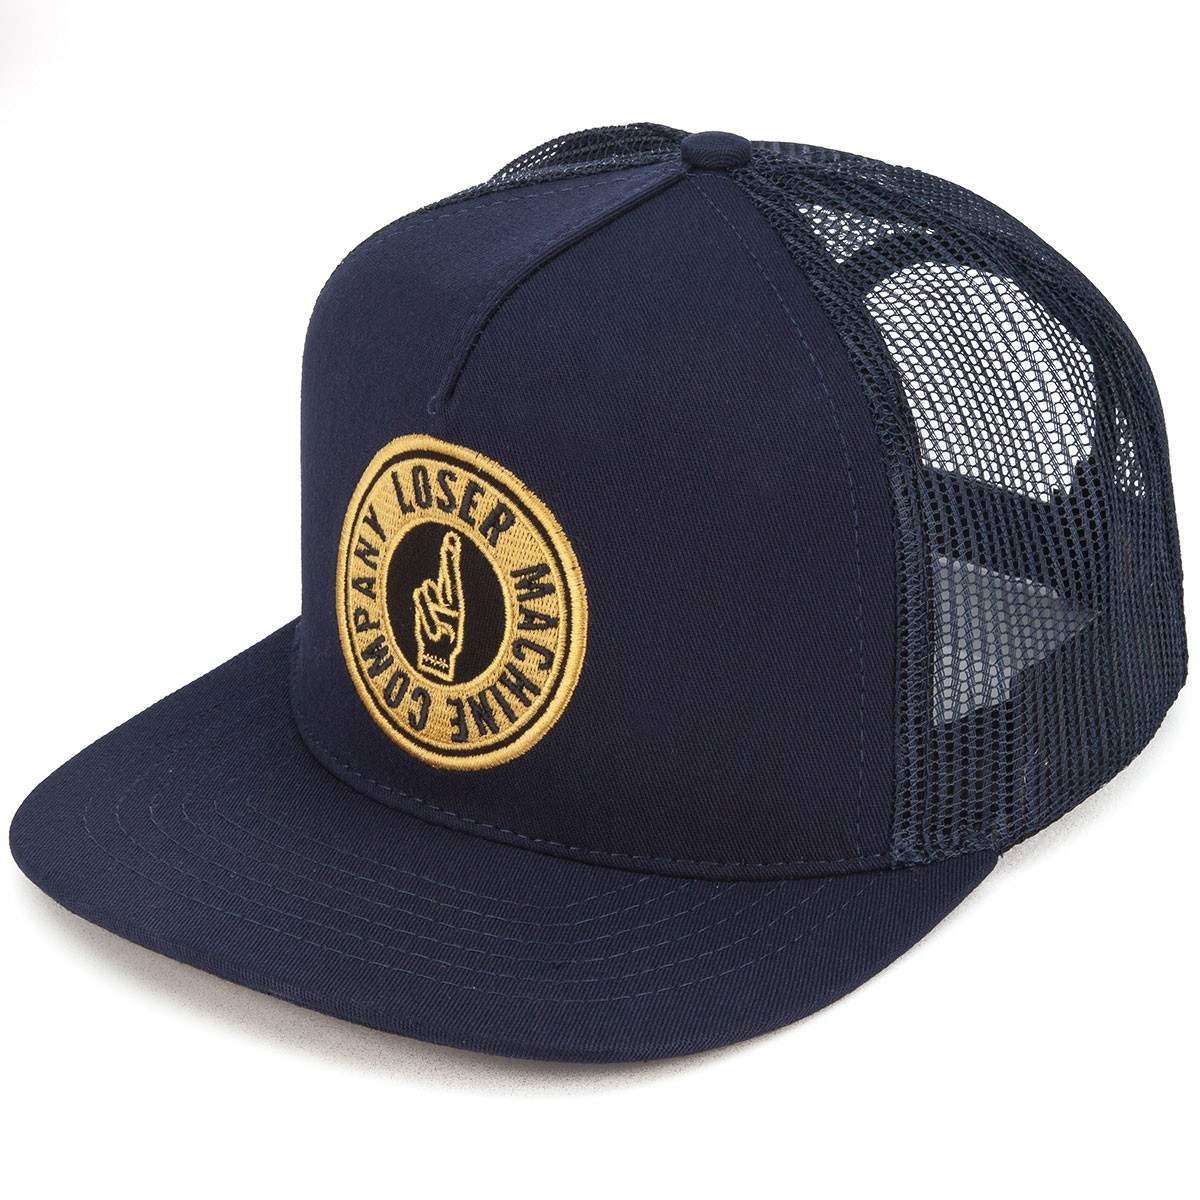 Loser Machine Sui-Trucker Hat - Navy 8d57114e5de